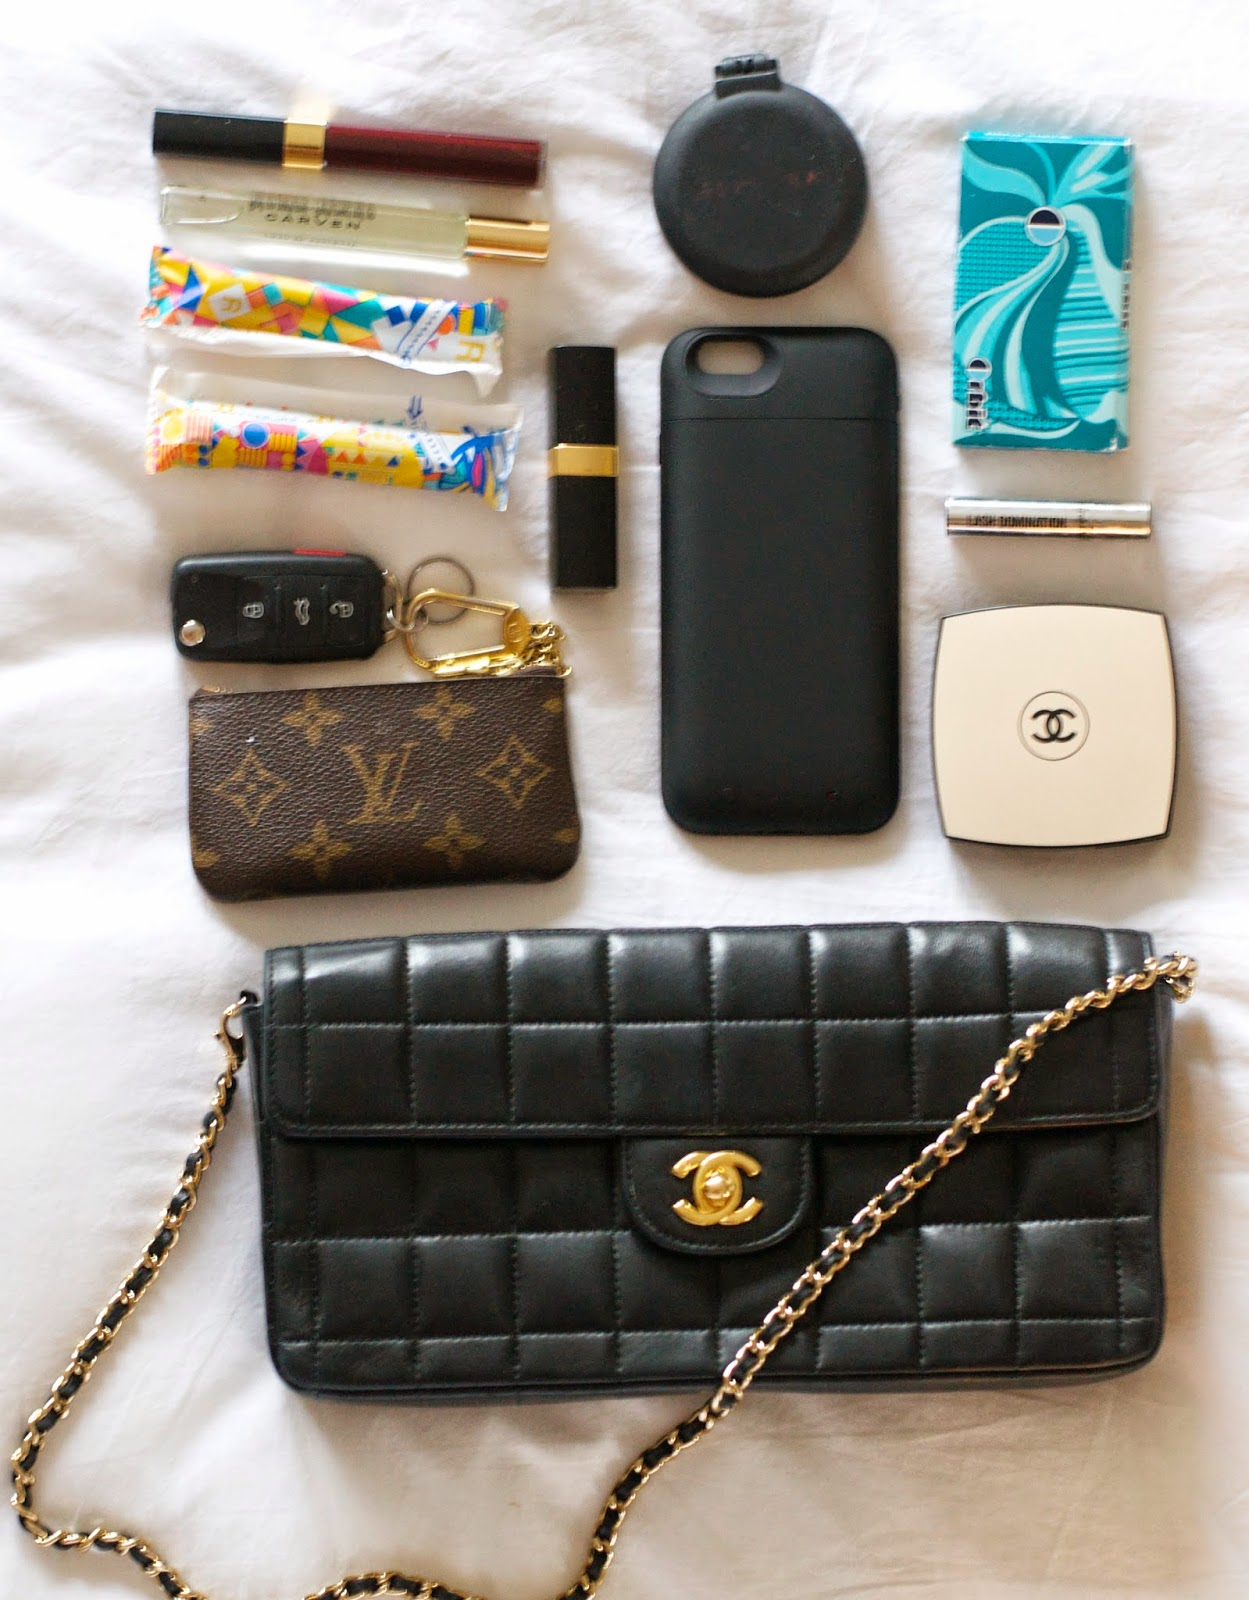 Everything I bring to a wedding in my Chanel bag